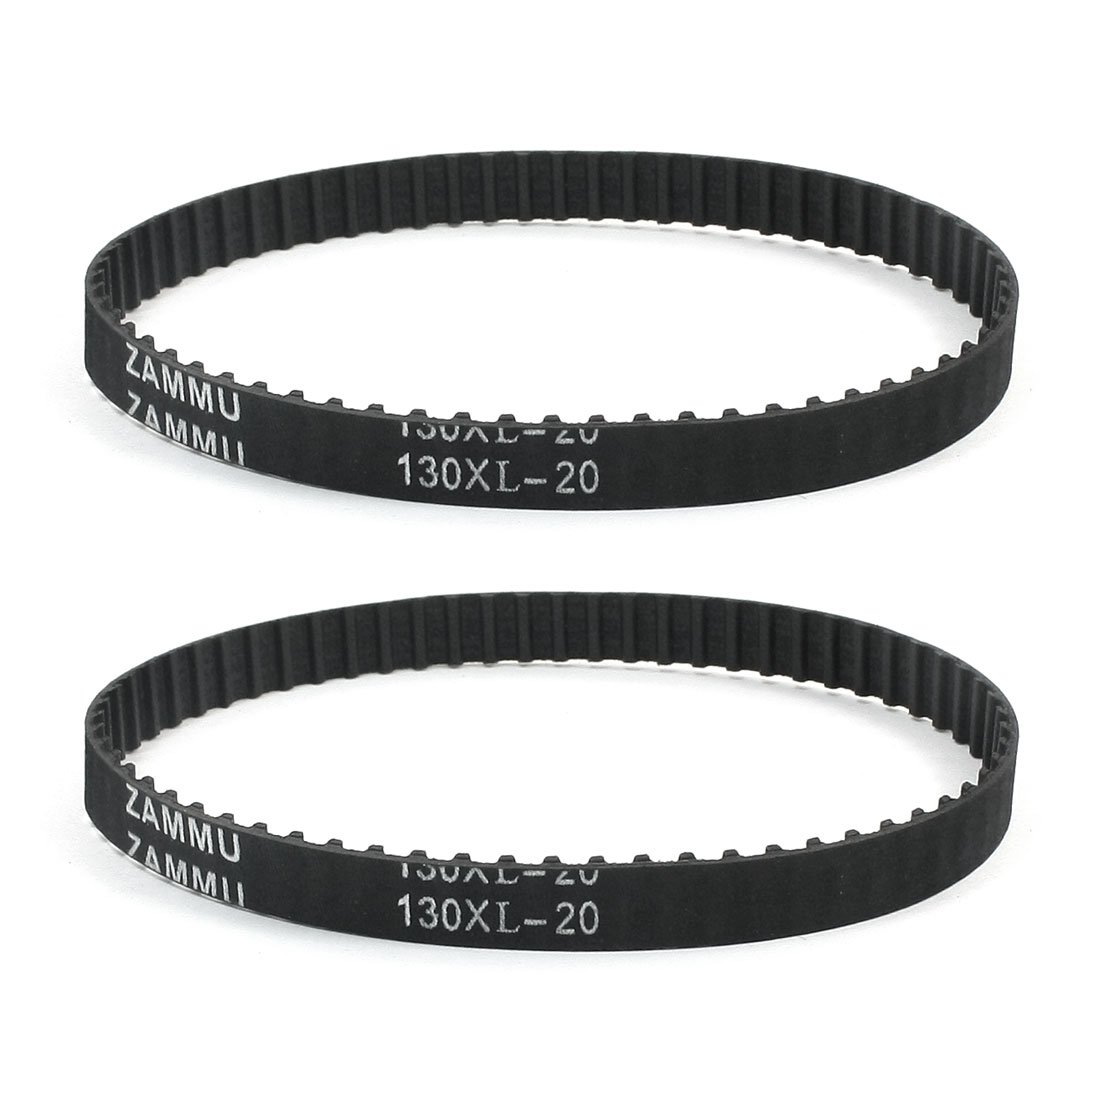 uxcell 2 x 130XL 65 Teeth 10mm Width Rubber Cogged Industrial Timing Belt 13